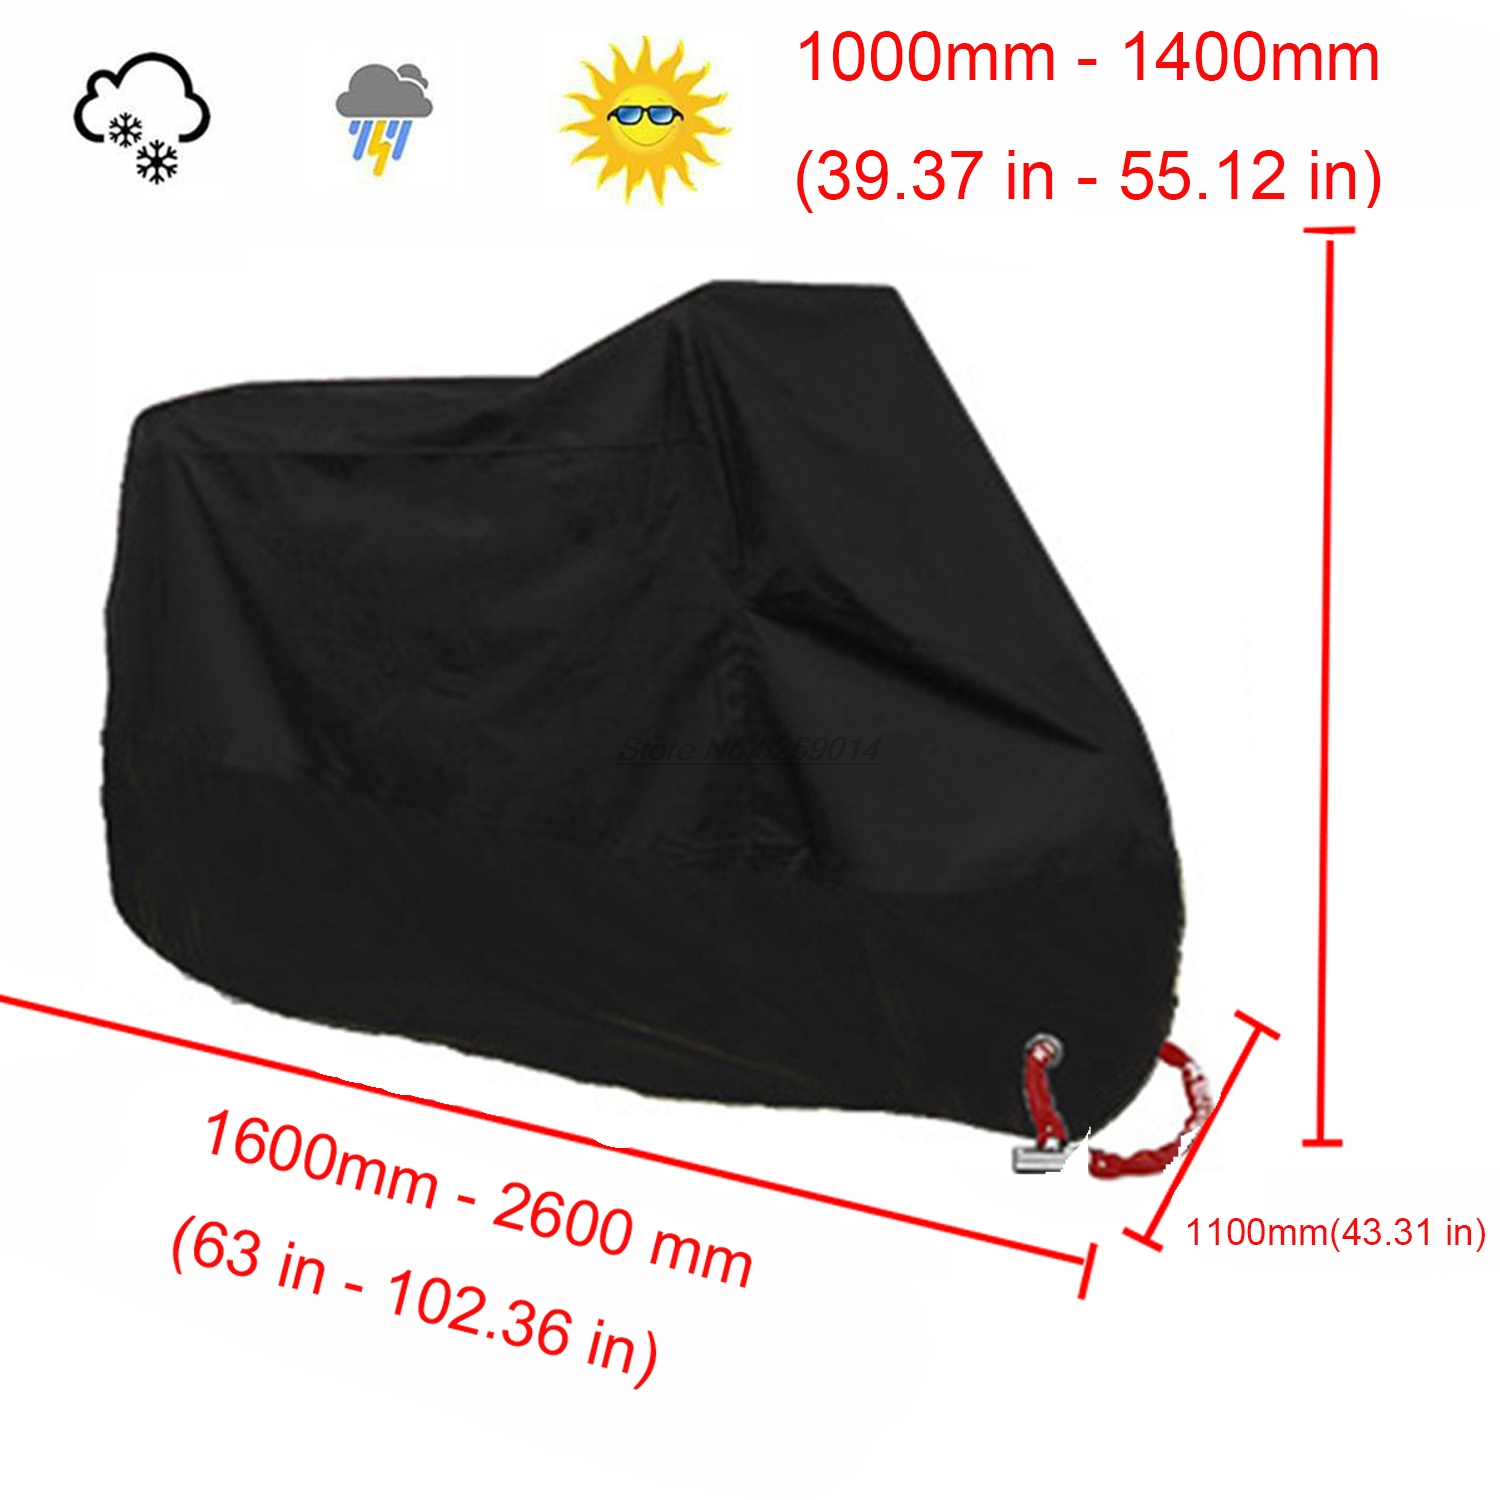 Motorcycle covers UV anti for 502 xmax 125 <font><b>yamaha</b></font> xmax 250 abs kymco <font><b>parts</b></font> <font><b>yamaha</b></font> <font><b>xt660</b></font> honda nc750x accessories honda KTM image